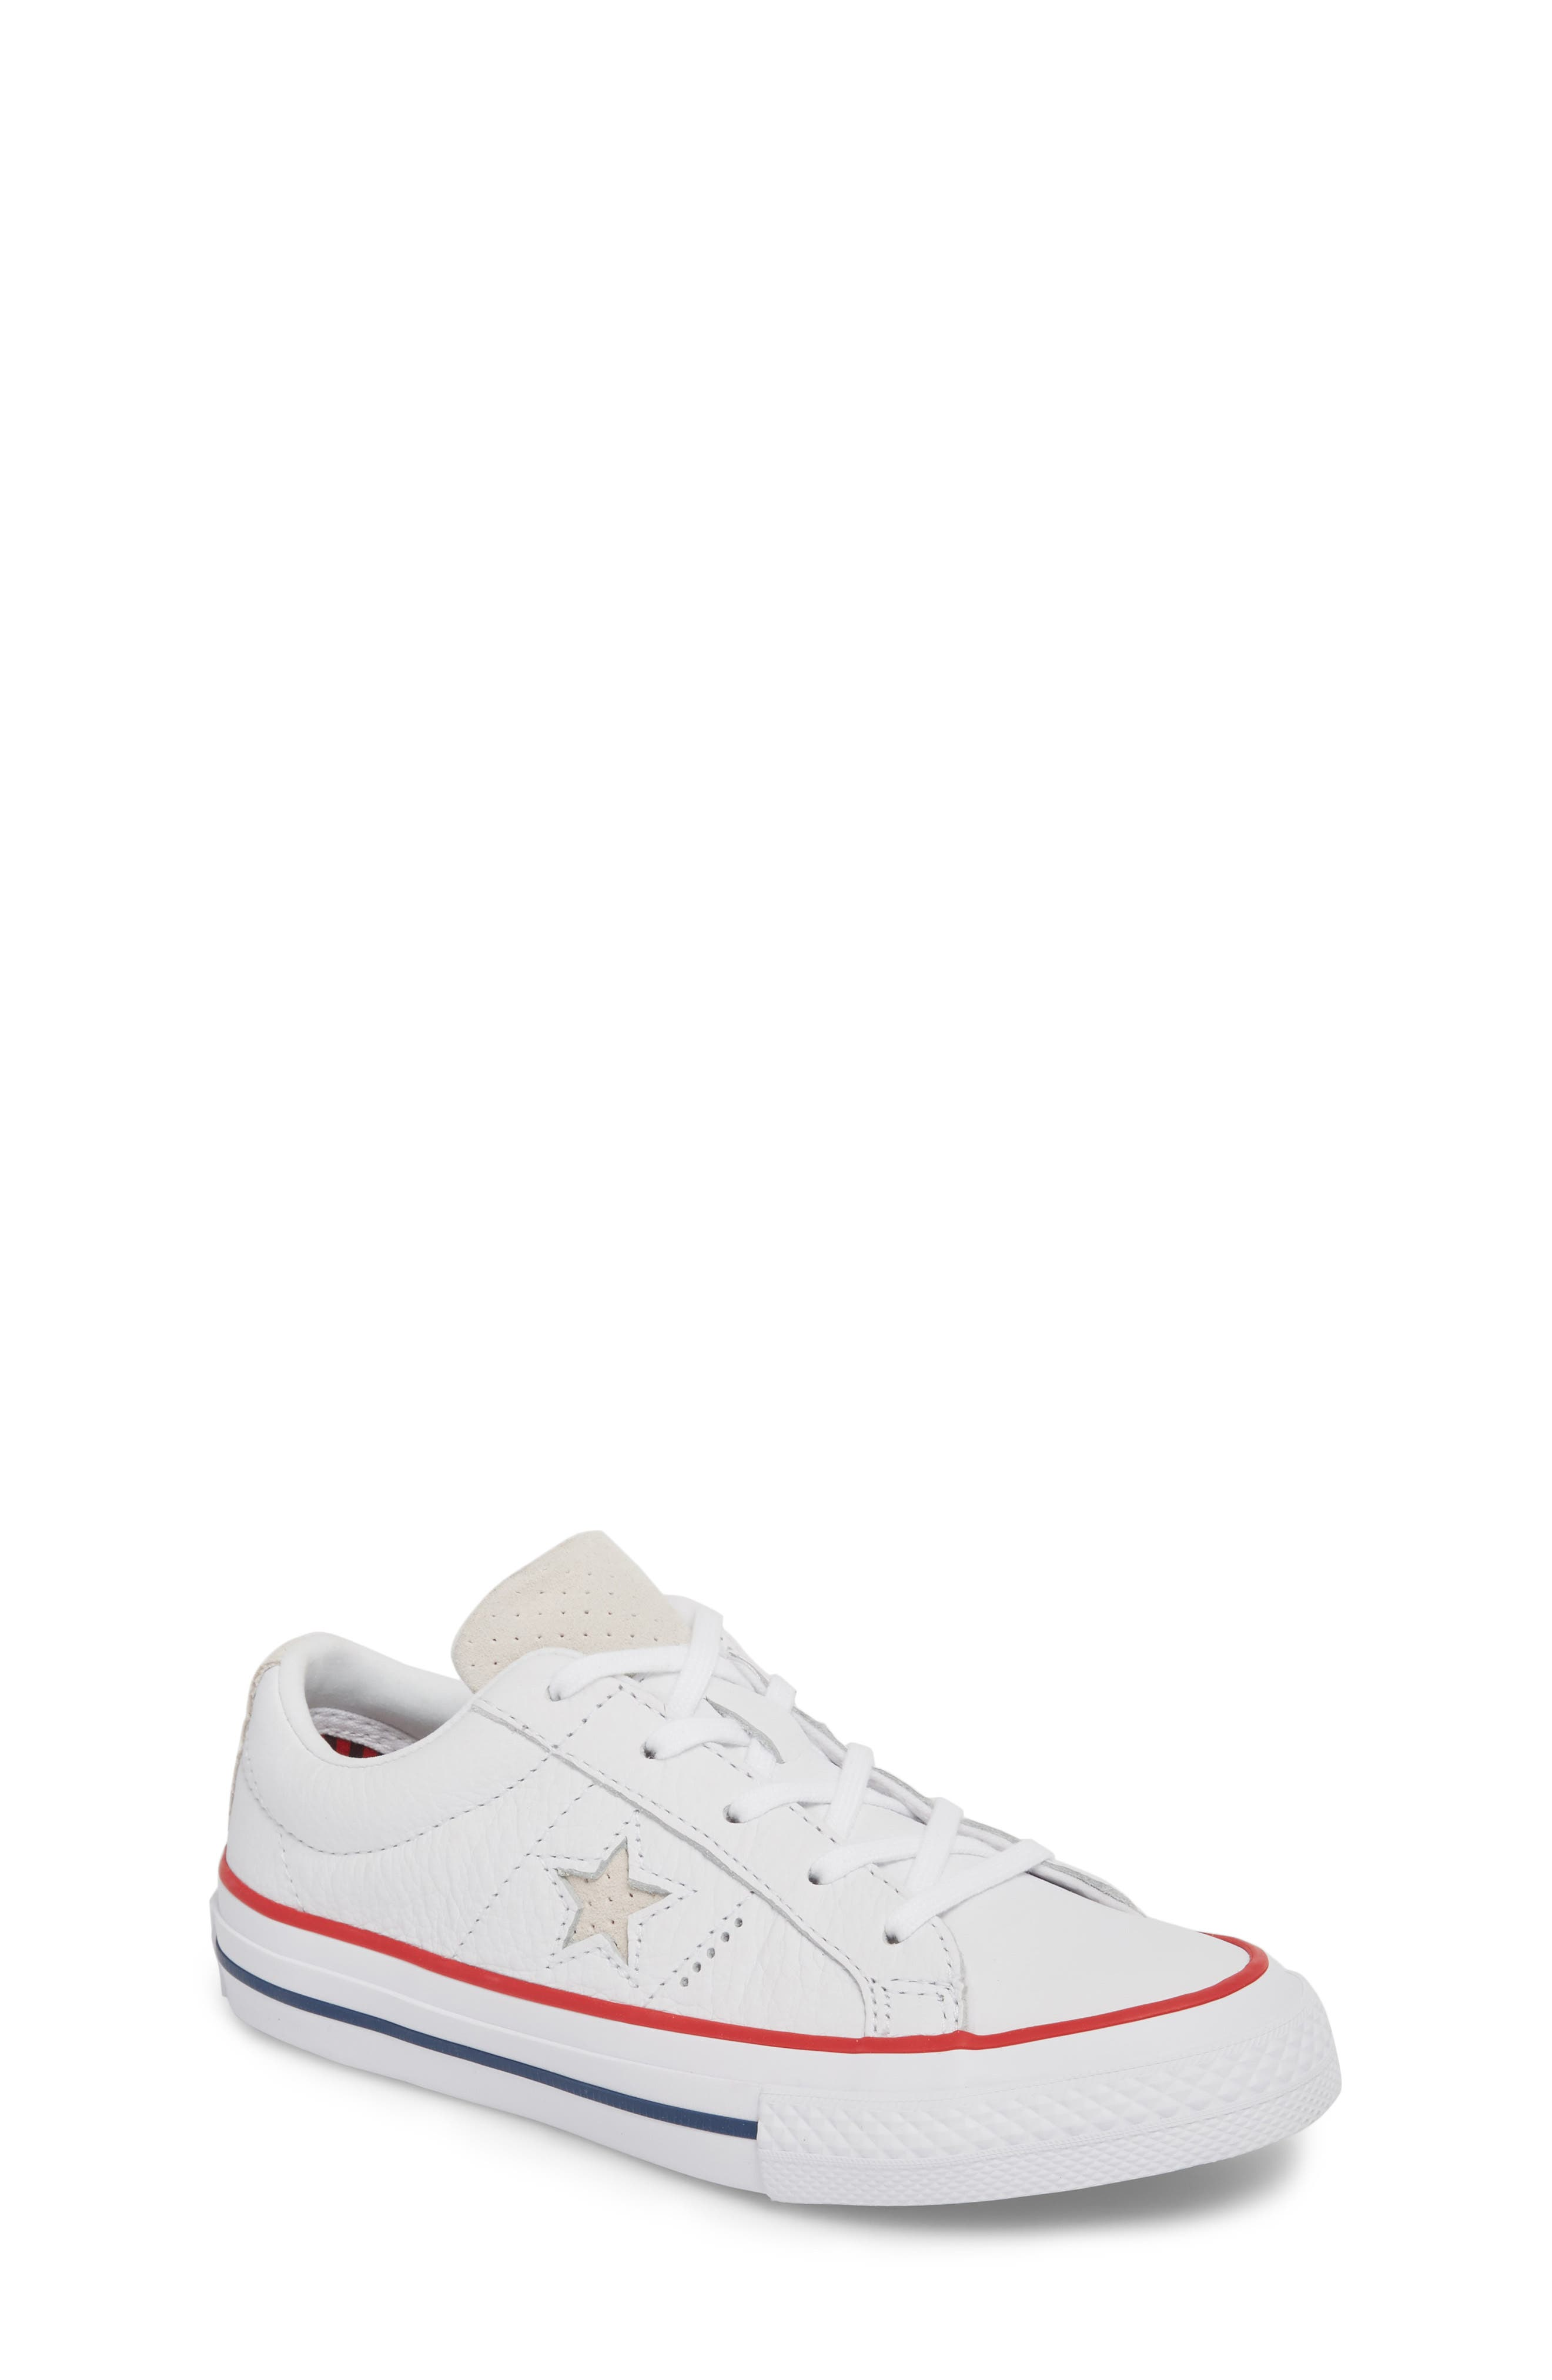 Chuck Taylor<sup>®</sup> All Star<sup>®</sup> New Heritage Oxford Sneaker,                             Main thumbnail 1, color,                             102